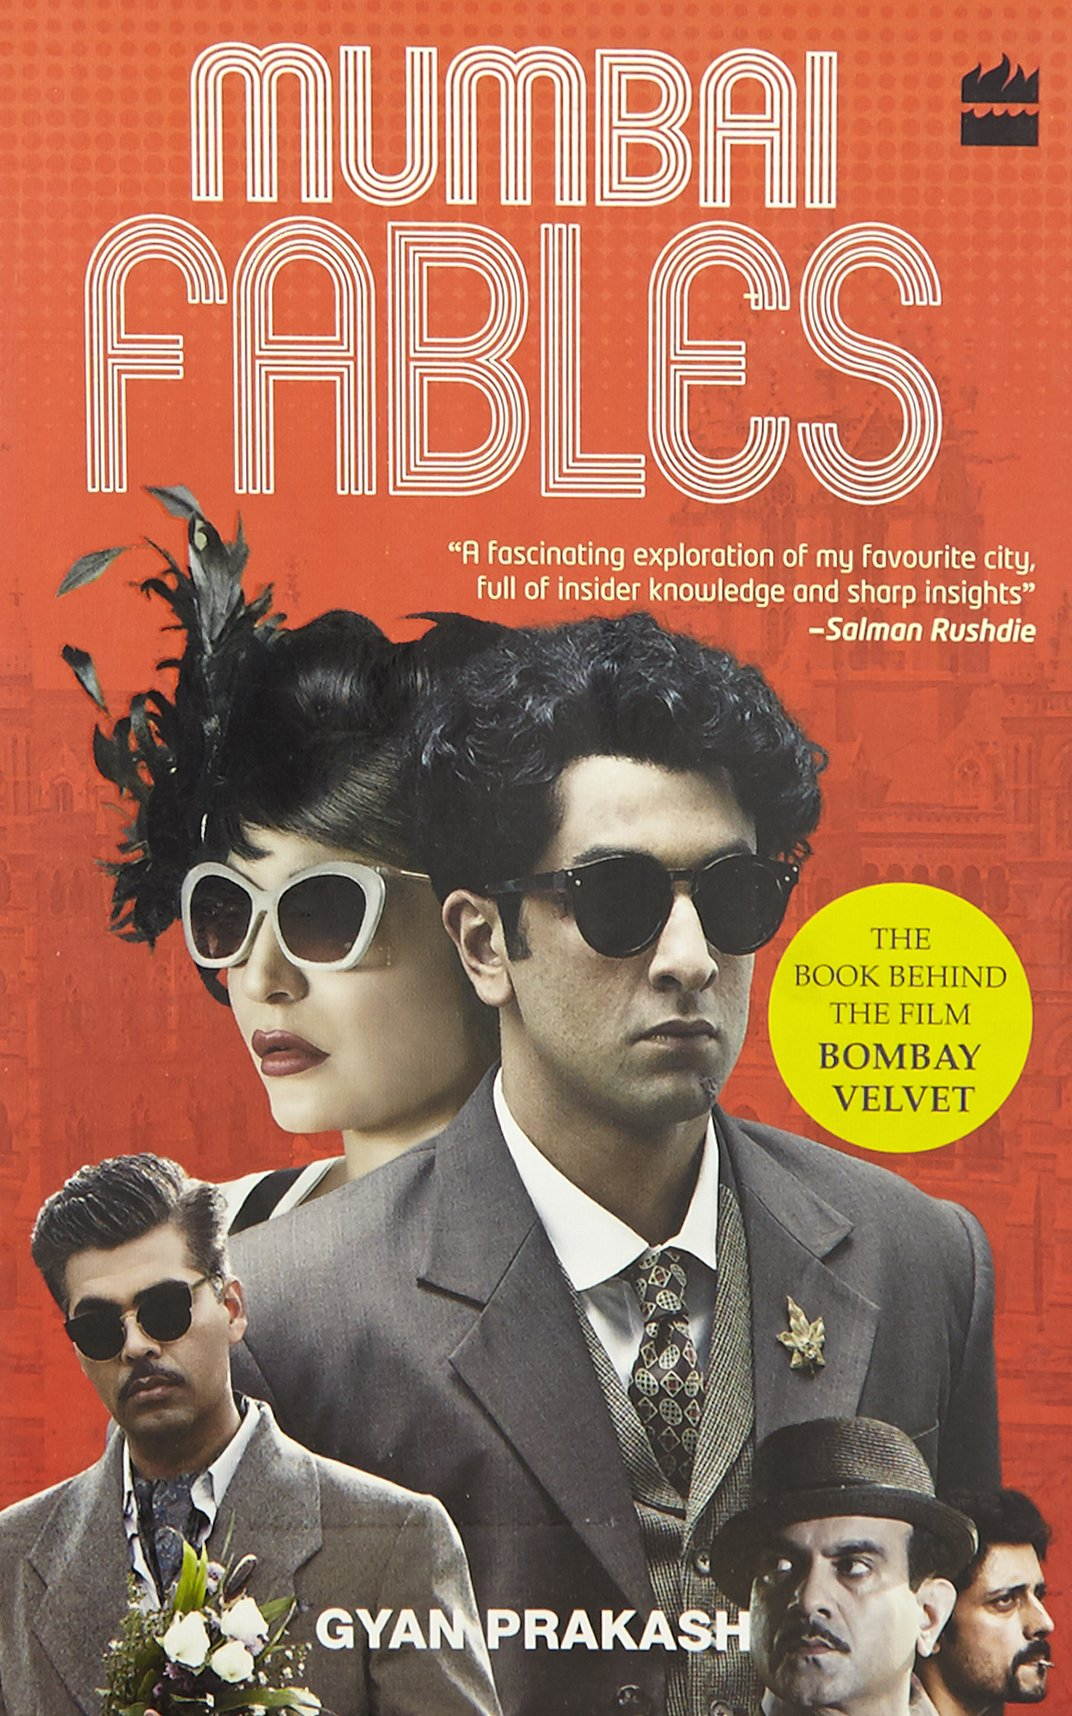 Buy Mumbai Fables Book Online at Low Prices in India | Mumbai Fables  Reviews & Ratings - Amazon.in